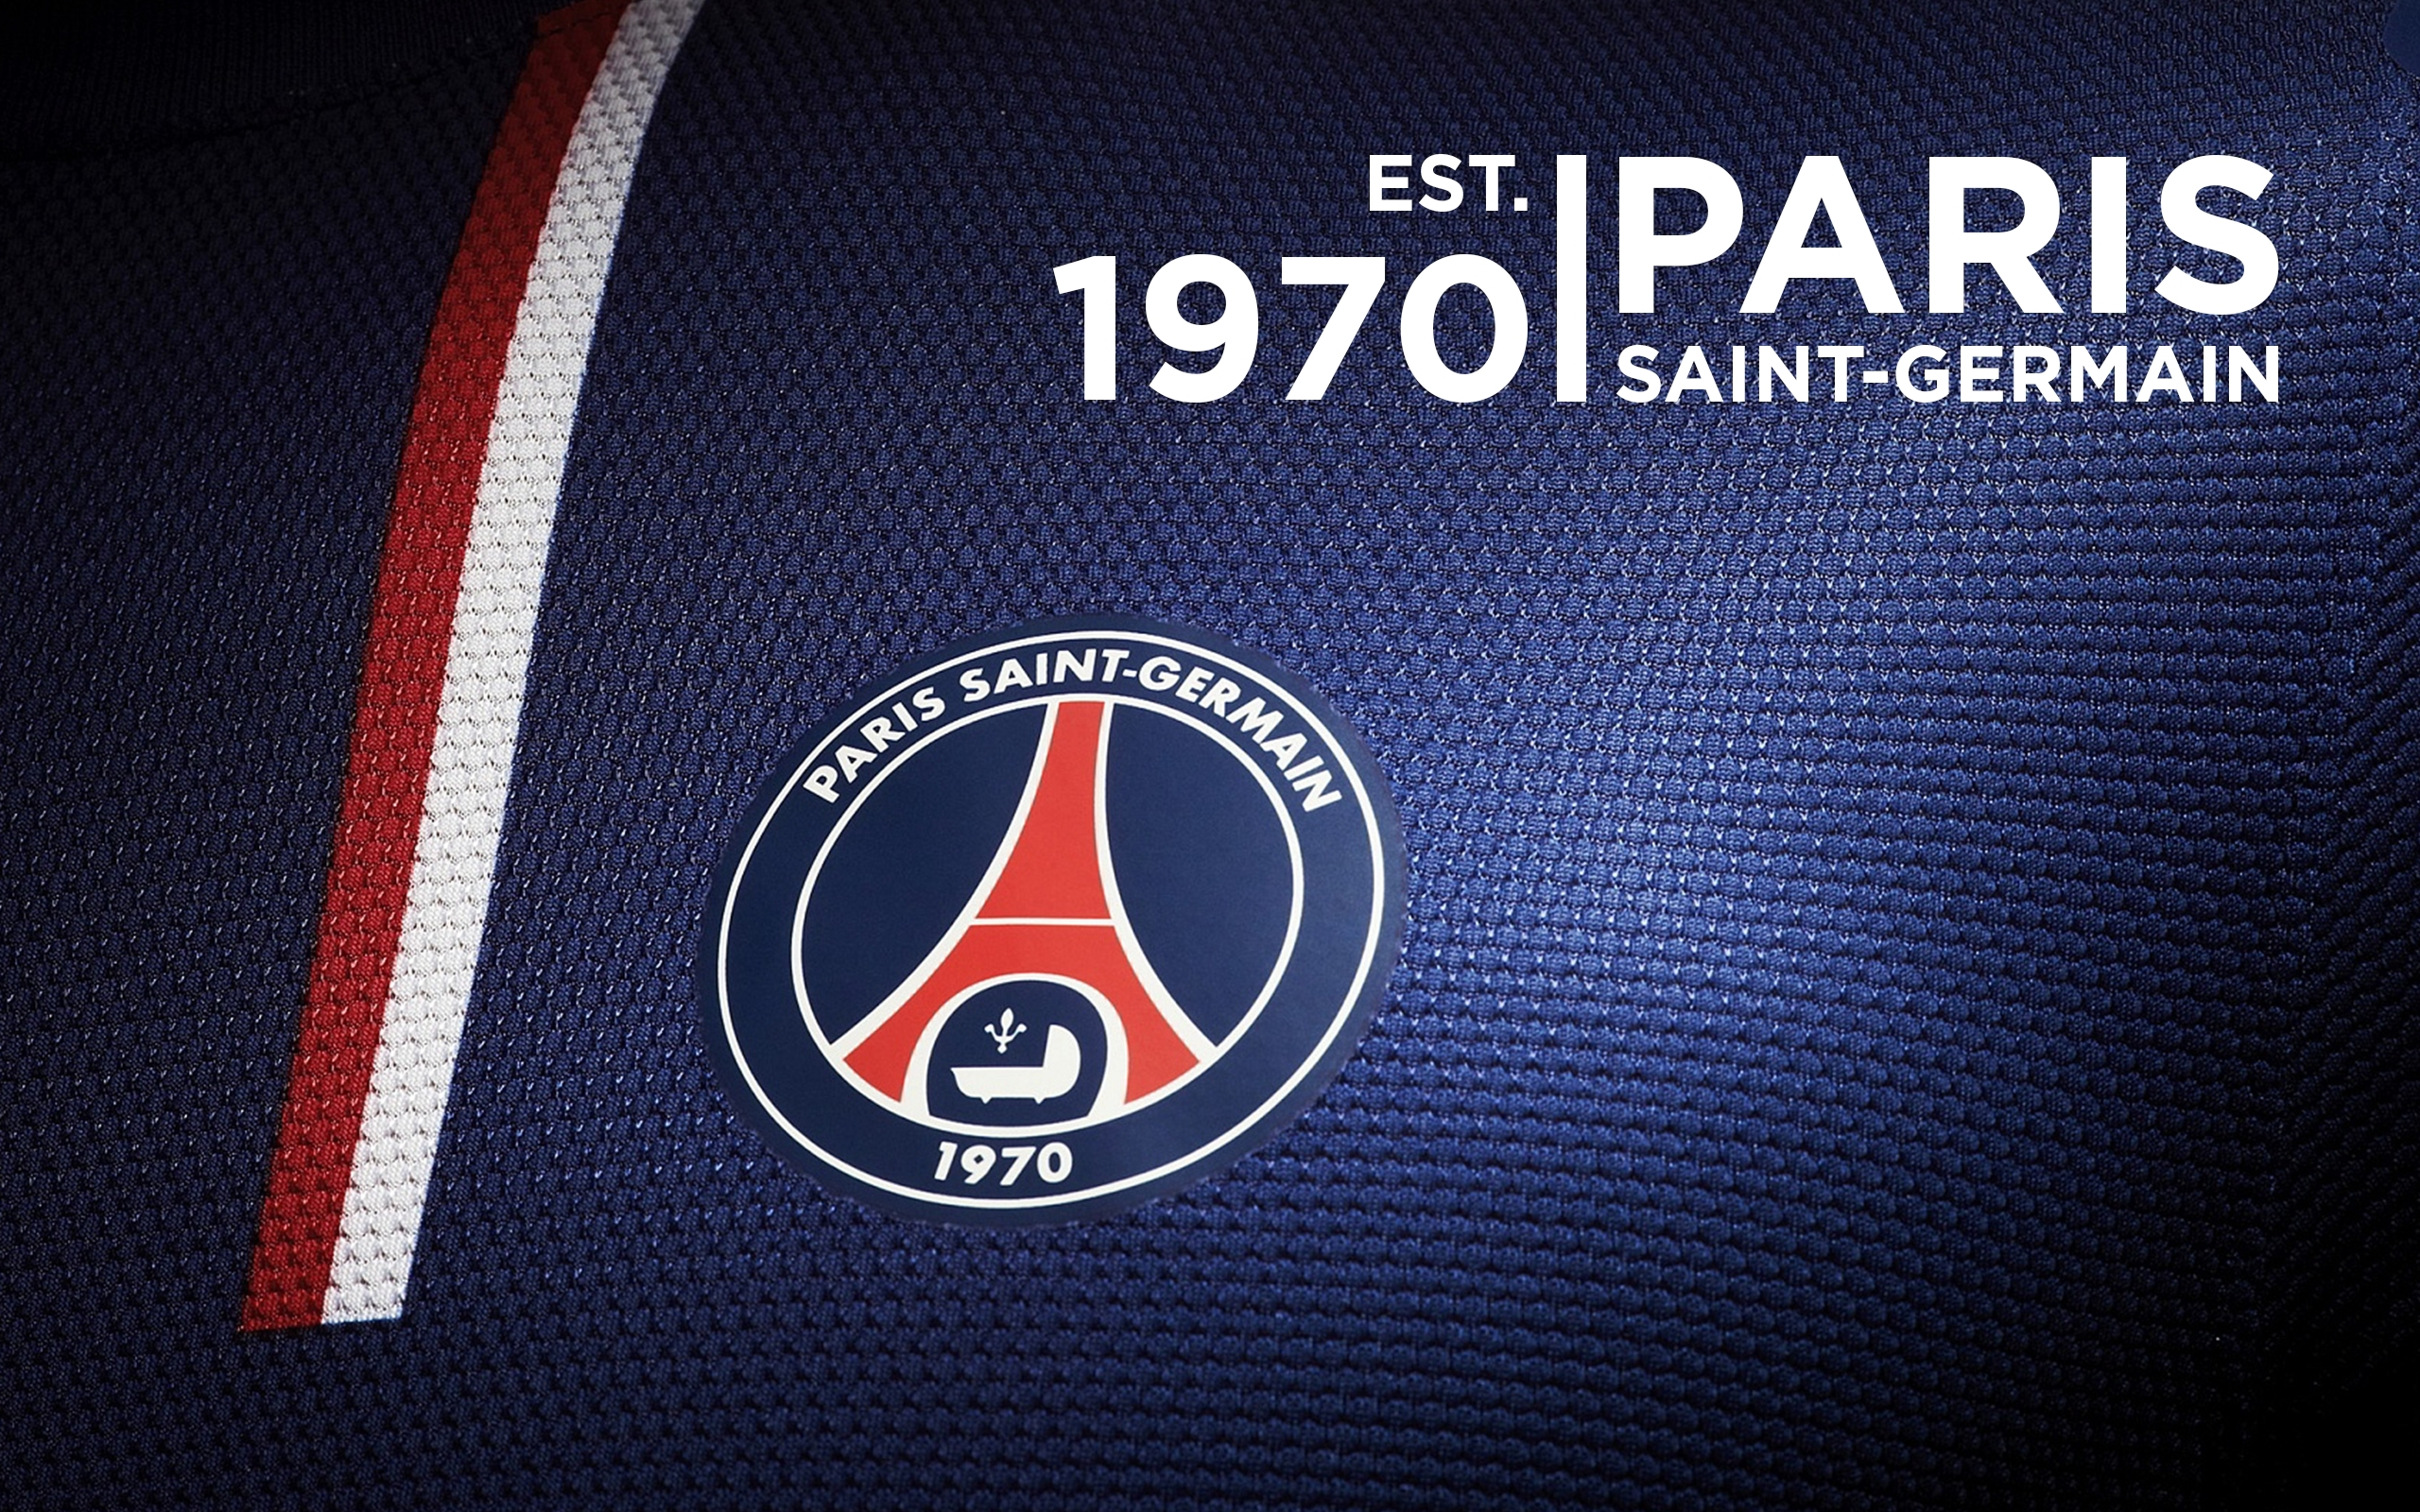 paris saint-germain (psg), fonds d'écran, wallpapers, images